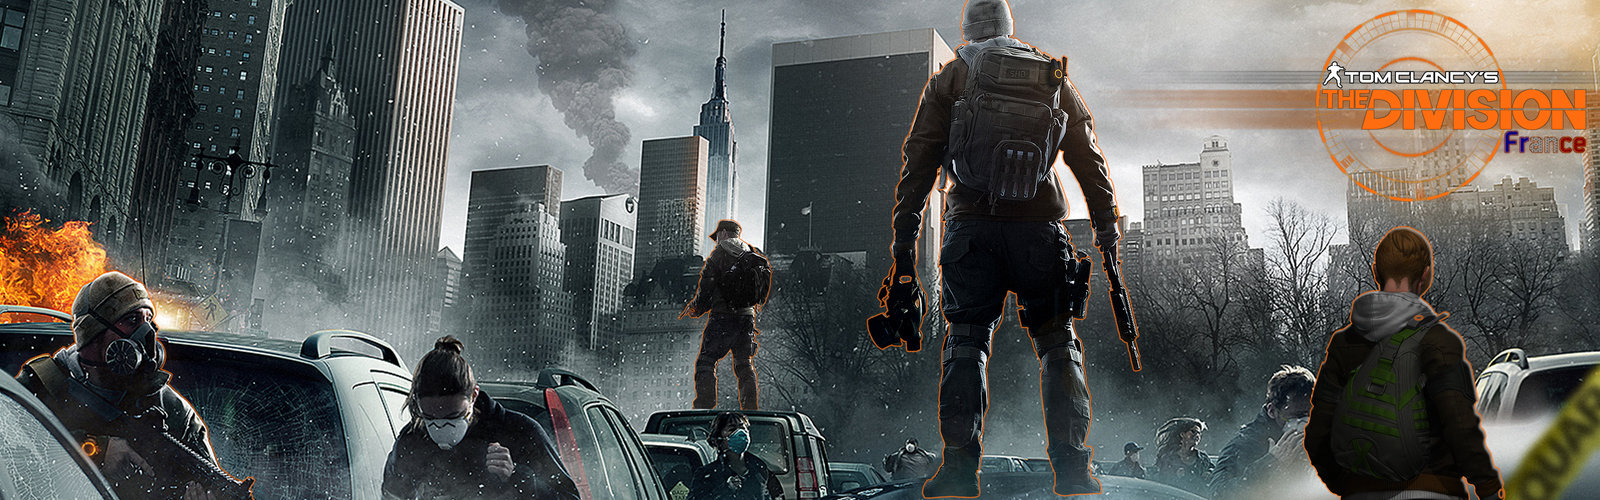 Community Intelligence Tom Clancys The Division Wallpaper HD 1600x500